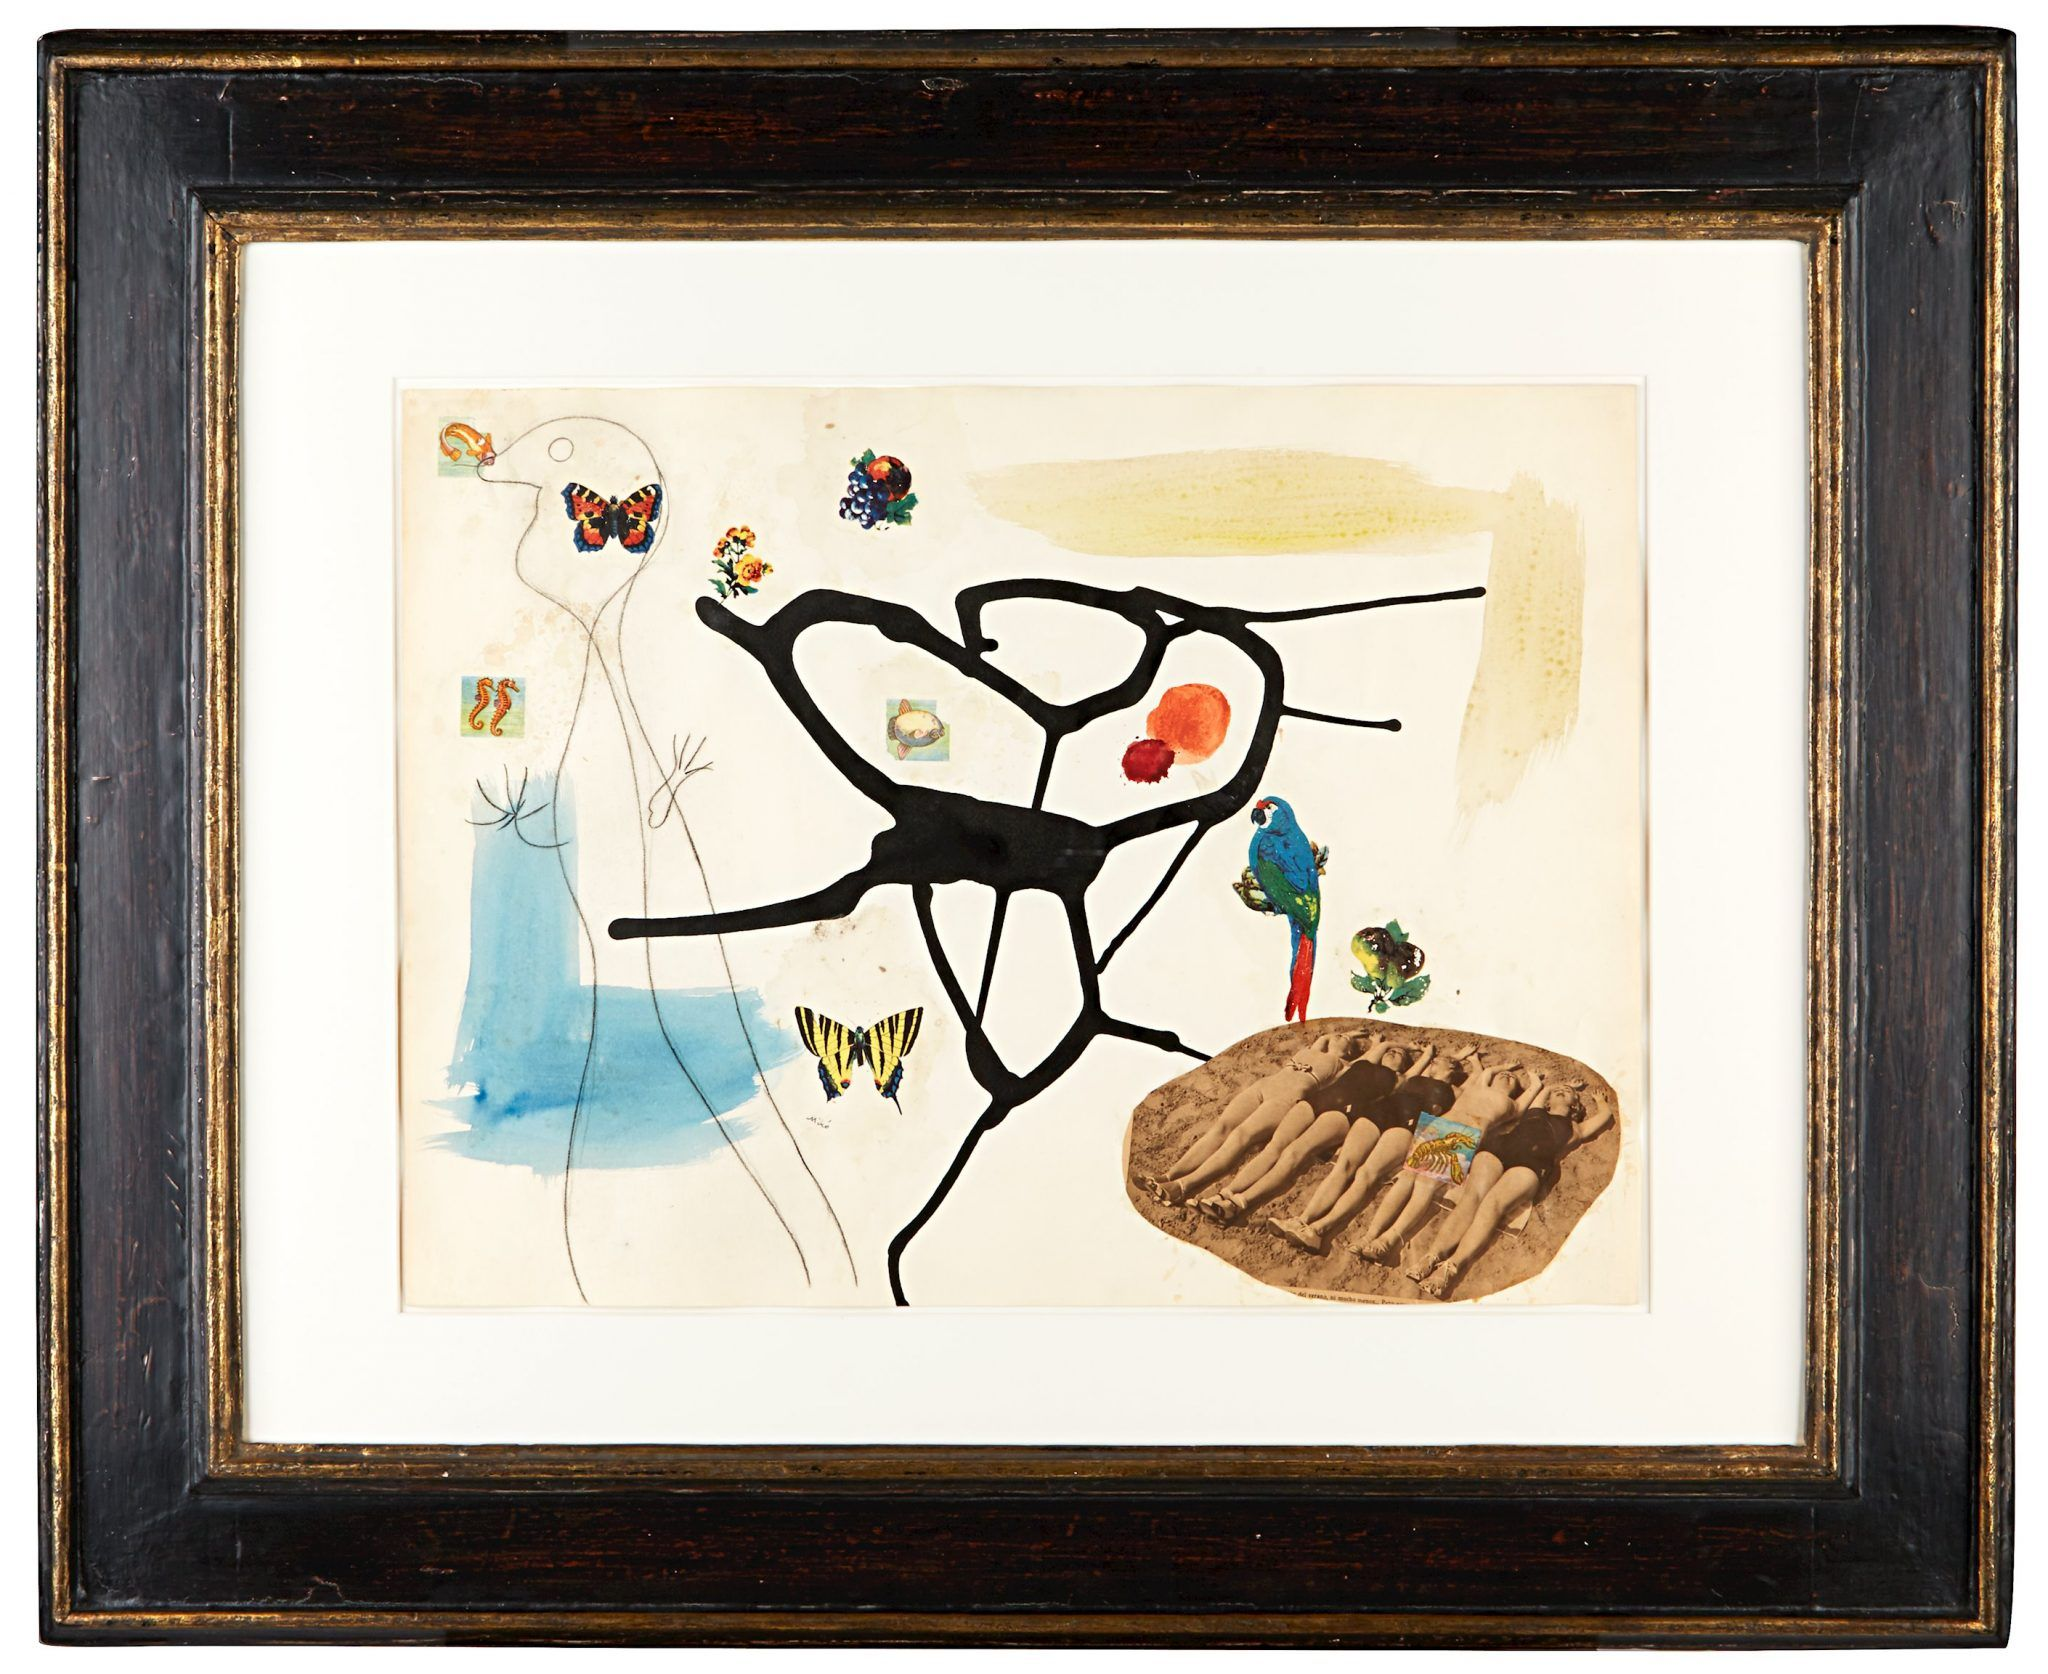 MÉTAMORPHOSE JOAN MIRO (Barcelona, 1893 - Palma, 1983) Pencil, India ink, watercolor, decal and collage on paper 46 x 62 cm (18.1 x 24.4 in.) Signed lower center 'Miró', signed, titled and dated on the reverse 'Joan Miró / 'métamorphose' / 23/3-4/4/36' 1936 PROVENANCE Pierre Matisse Gallery, New York; Pierre-Noël Matisse, Paris; Private collection